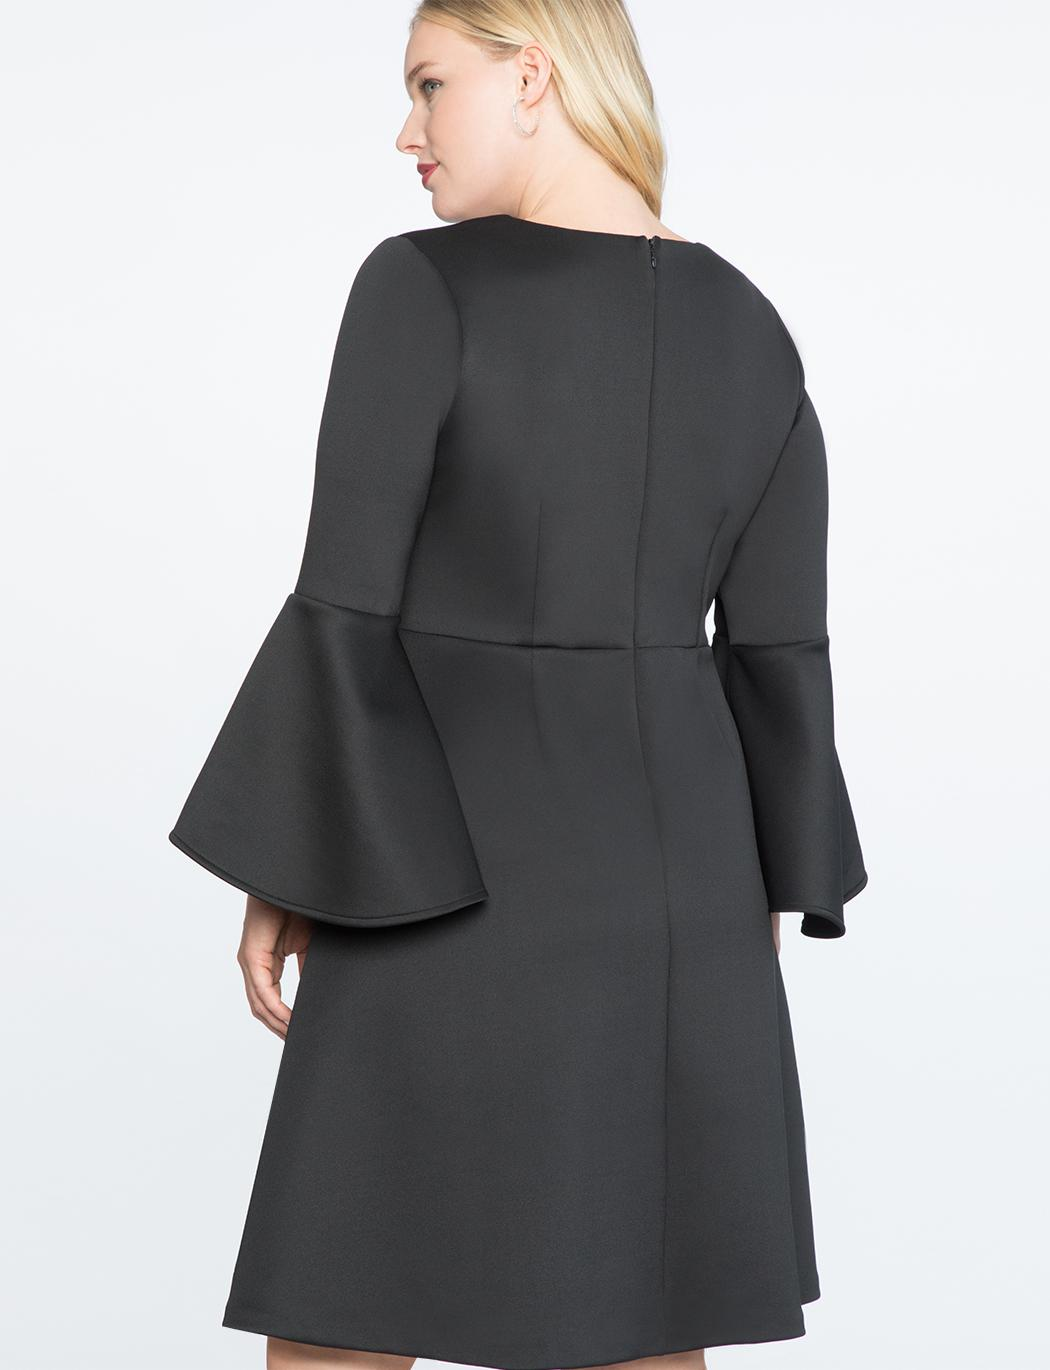 d079d994f41 Lyst - Eloquii Flare Sleeve Fit And Flare Dress in Black